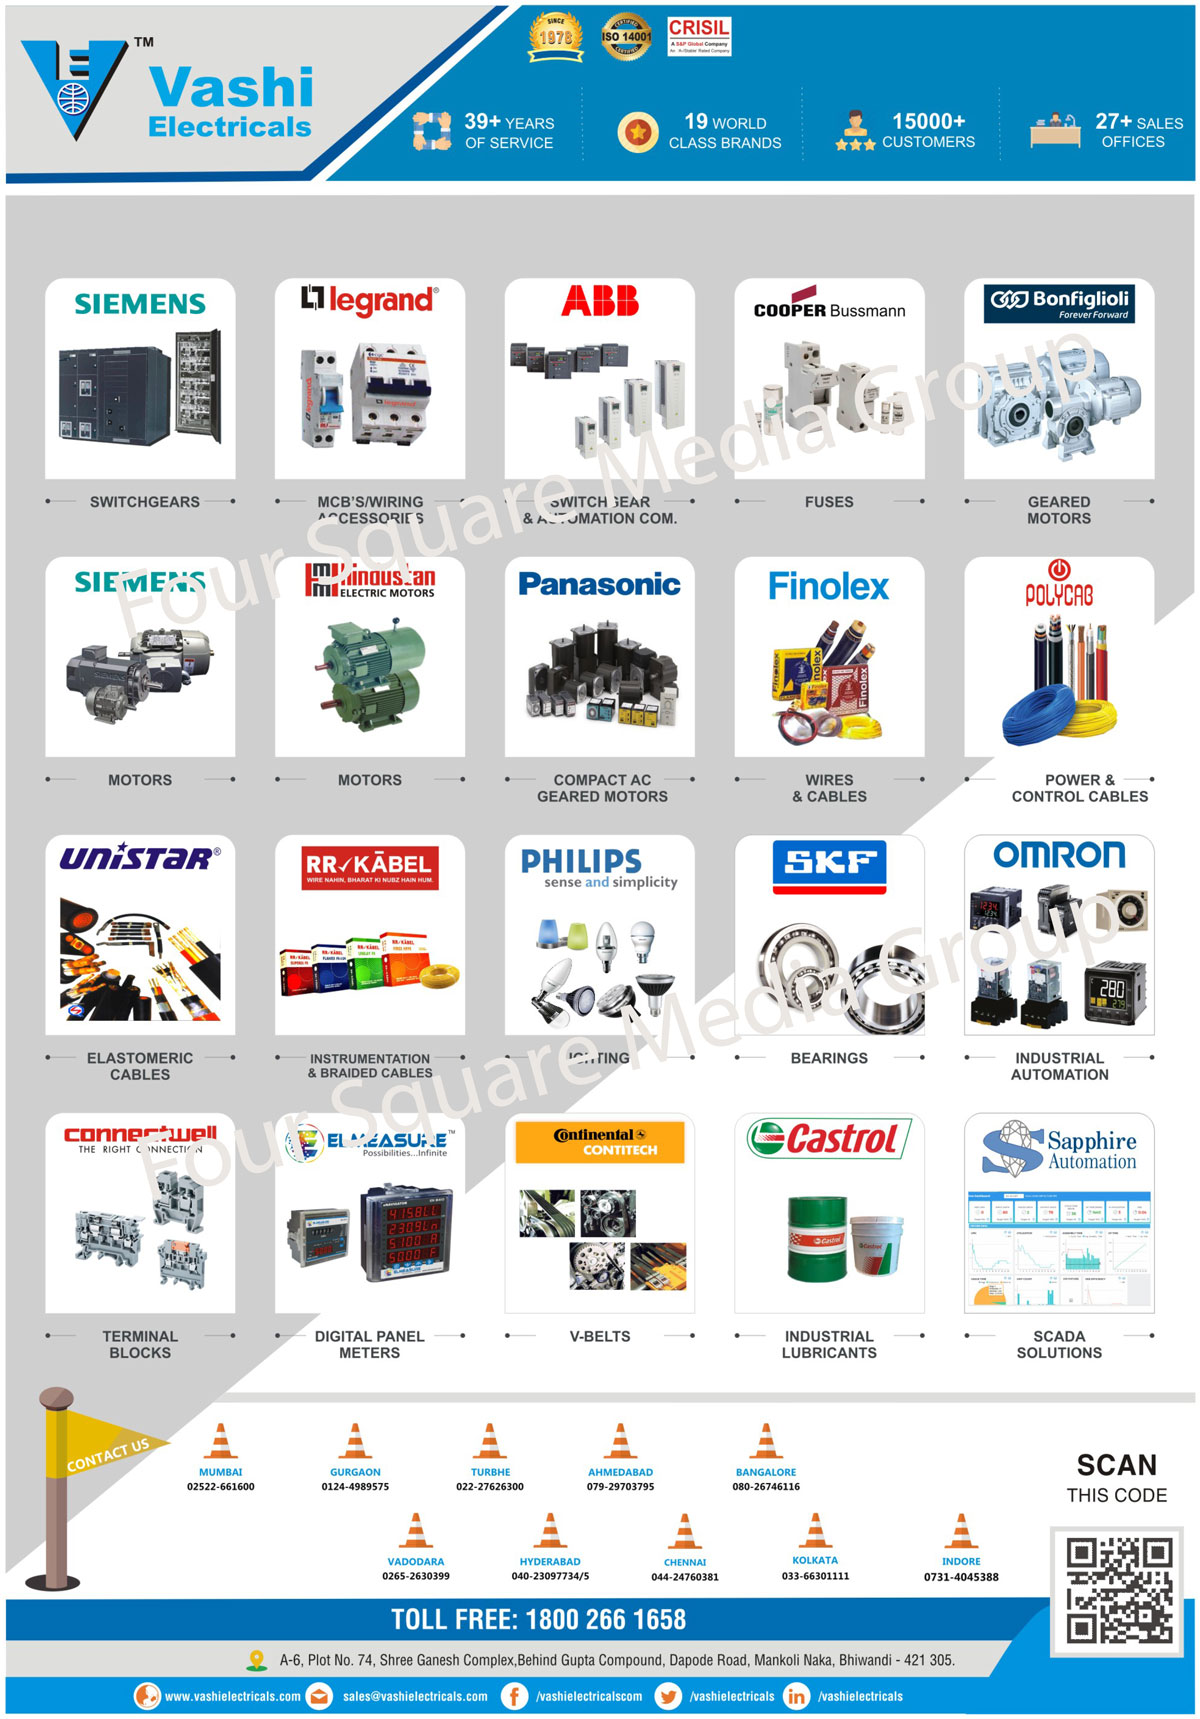 Switchgear, Geared Motors, MCBs, Wiring Accessories, Electric Motors, Active Harmonic Filters, Elastomeric Cables, Industrial Lubricants, Power Tools, Compact Ac Geared Motors, Lighting, Terminal Blocks, Wires, Cables, Fuses, Compact Modular Fuses, Photovoltaic Fuses, Low Voltage Fuses, Medium Voltage Fuses, Ammeters, Voltmeters, VAF Meters, Load Managers, Energy Meters, Dual Source Energy Meters, Generator Monitoring Units, Data Loggers, High Profile Power Analysers, Intelligent Earth Leakage Relays, IELR, Intelligent Power Factor Controllers, IPFC, Industrial Lights, High Bay Lights, Well Glass Lights, Bulk Head Lights, Outdoor Lights, Flood Lights, Street Lights, Post Top Lights, Bollards, Master Led Spot MV, Solar Power Solutions, Solar Street Lights, Solar Water Heaters, Solar Thermal Water Heaters, Solar PV System Integration, Drives, Power Cables, Control Cables, Instrumentation Cables, Braided Cables, Rolling Bearings, Digital Panel Meters, Industrial Automation, Automation Commissioner